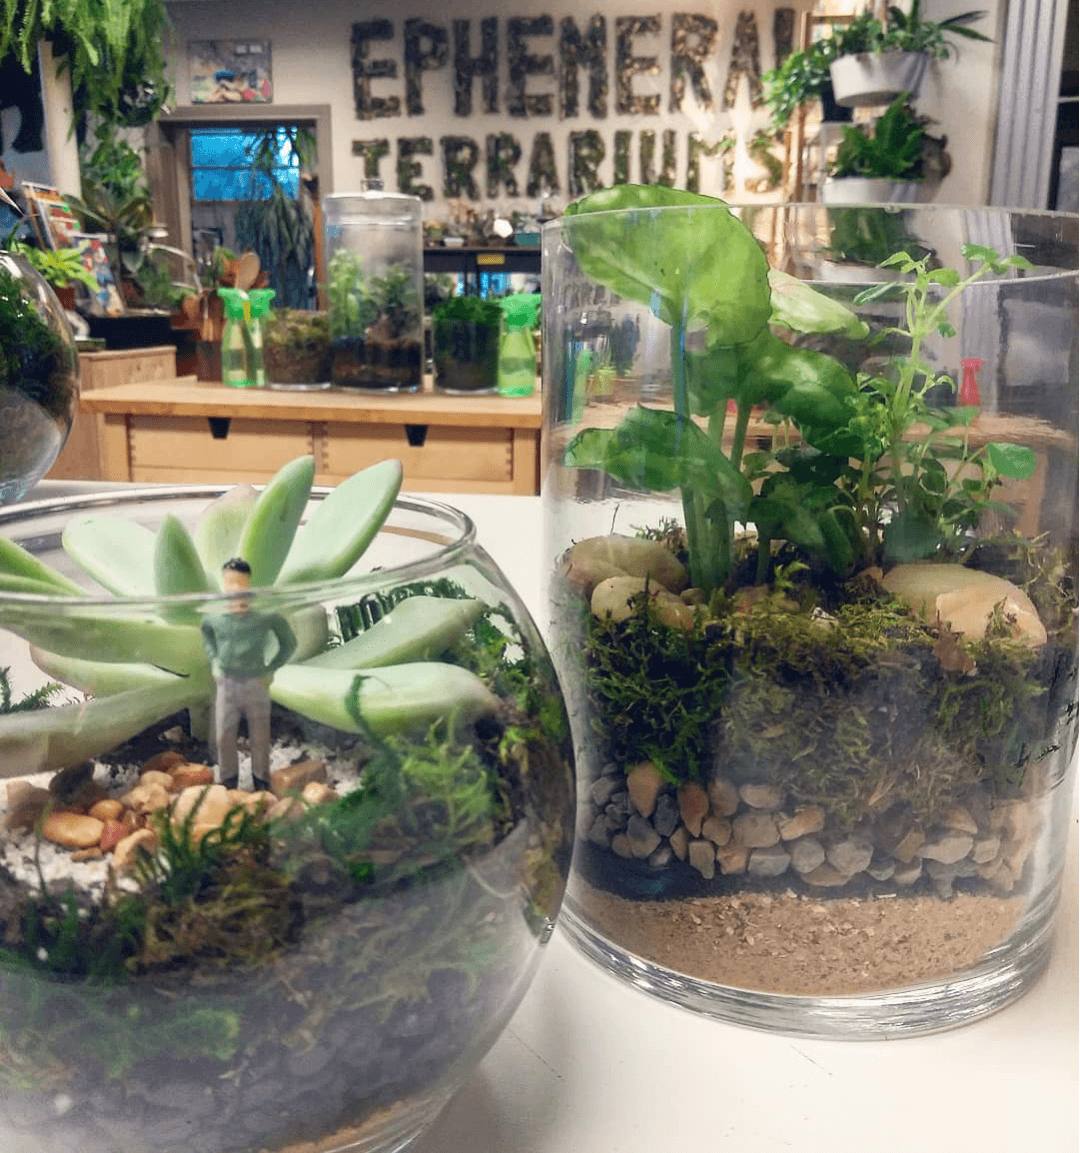 Make Your Own Terrarium at Bare Arms Brewing